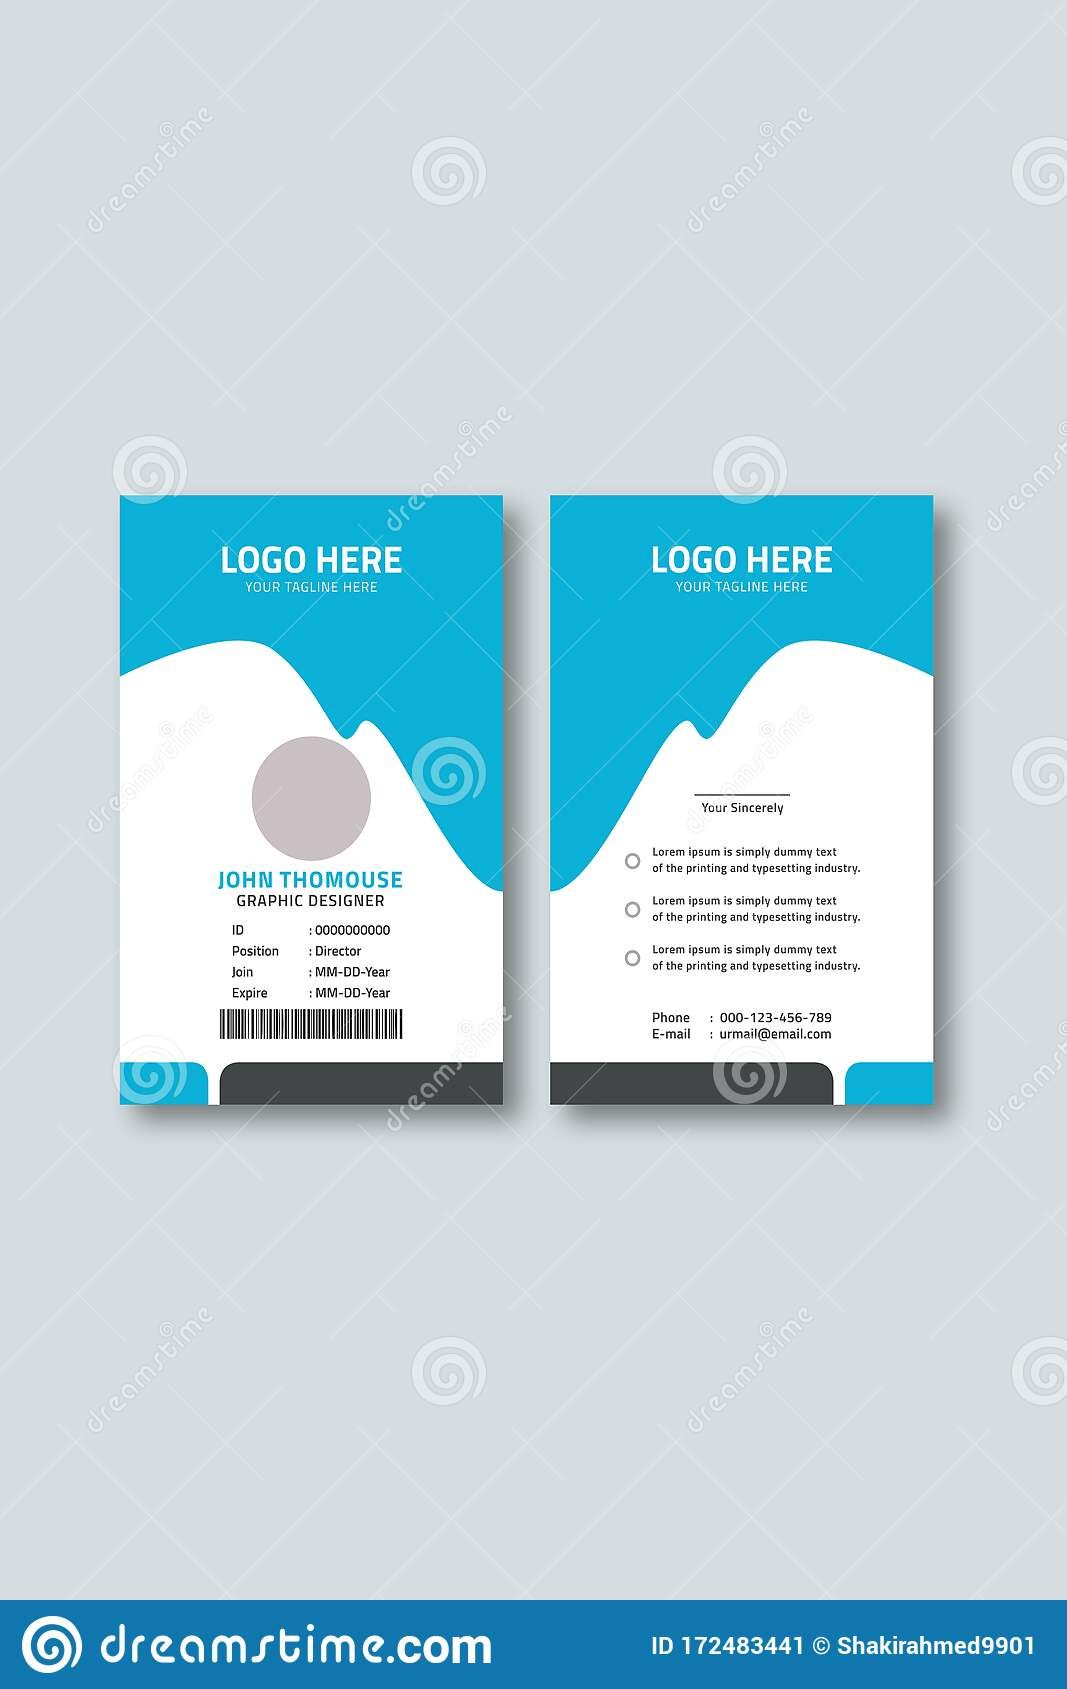 Employee Id Card Template Free Download from thumbs.dreamstime.com